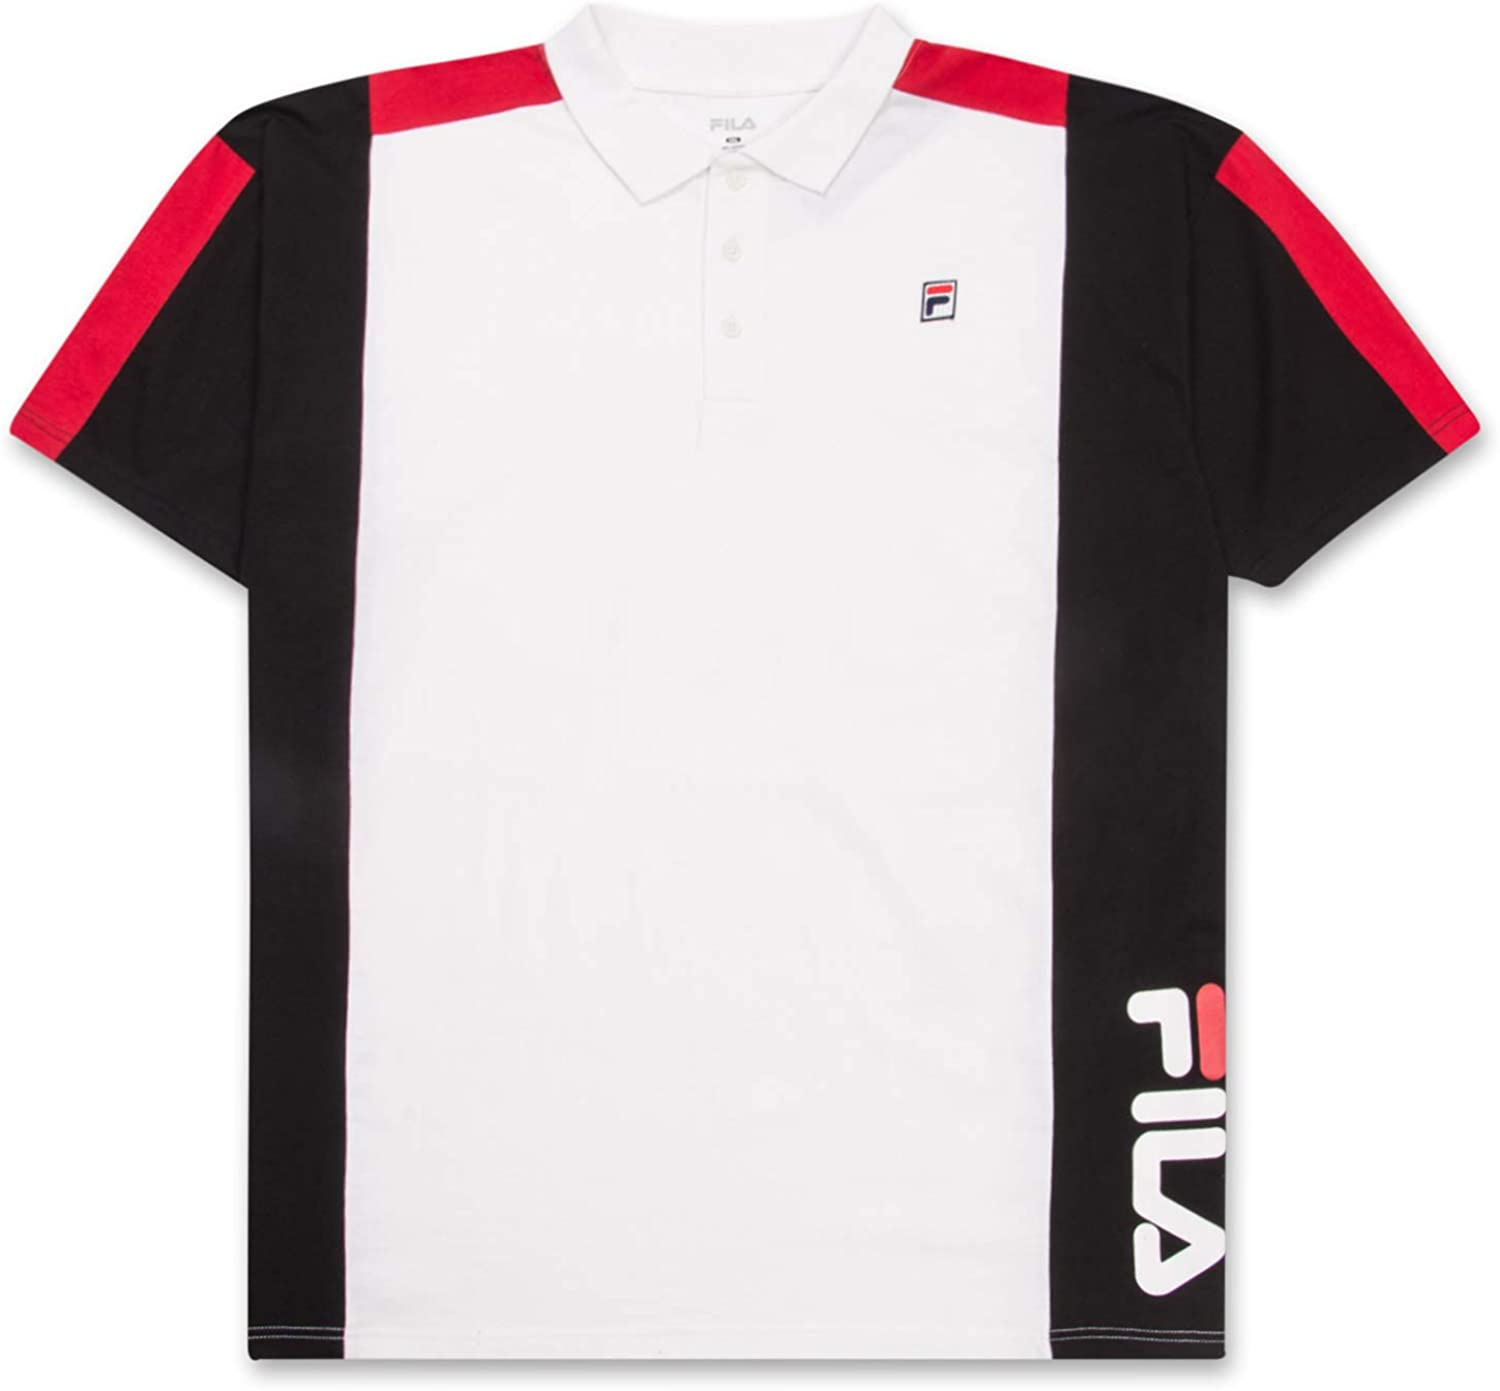 Fila Big and Tall Shirts for Men Cotton Polo Shirt Performance Short Sleeve Golf Polo